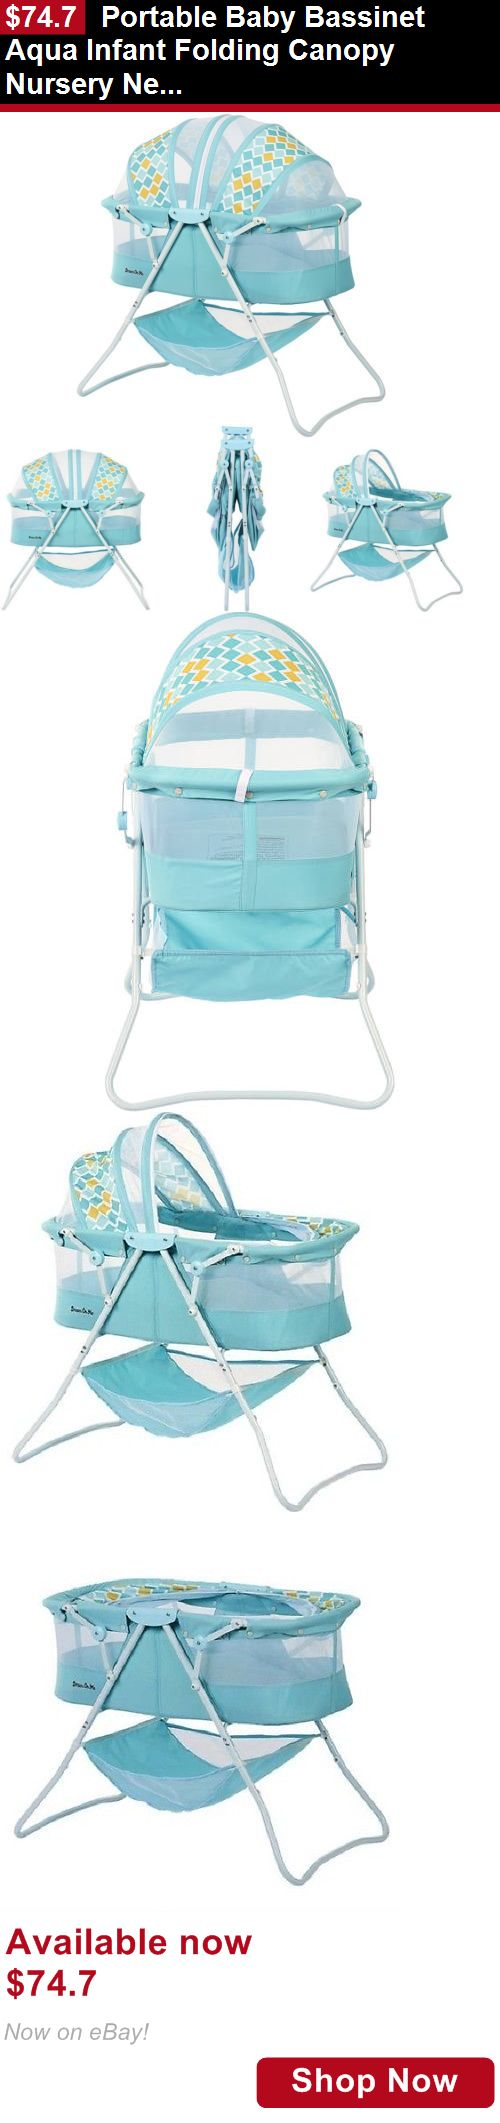 Bassinets And Cradles: Portable Baby Bassinet Aqua Infant Folding Canopy Nursery Newborn Sleeper Travel BUY IT NOW ONLY: $74.7